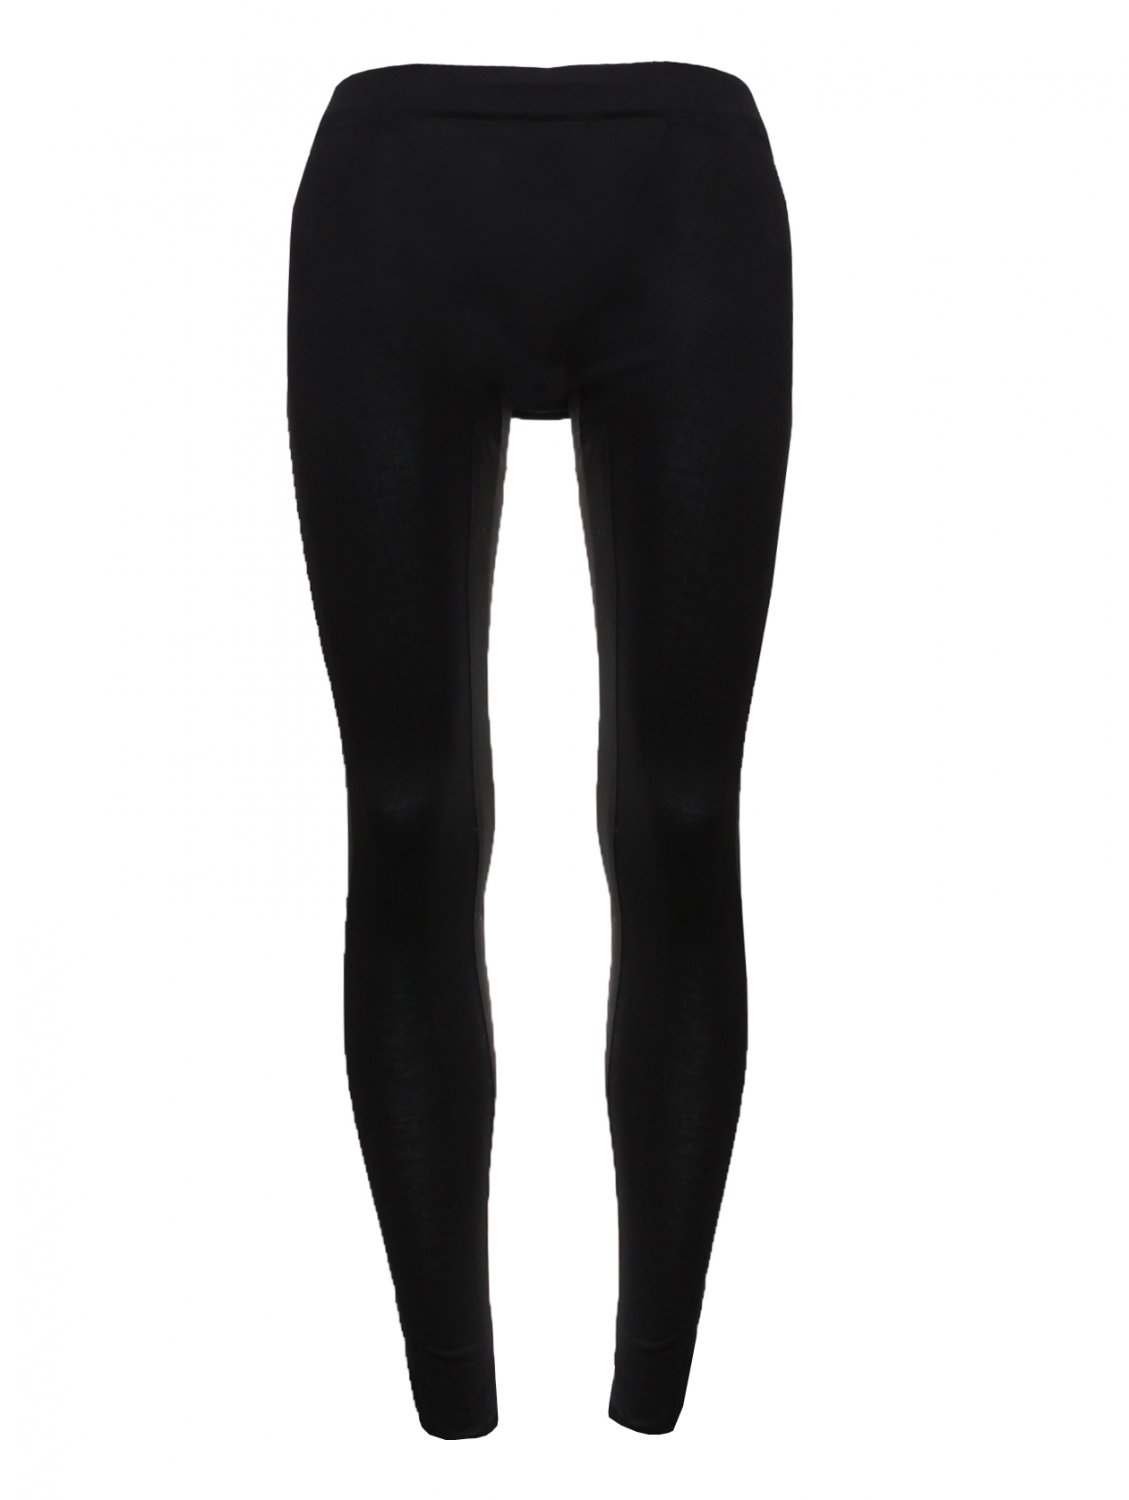 Adidas slvr Silk Insert Elasticated Leggings Black in Black | Lyst